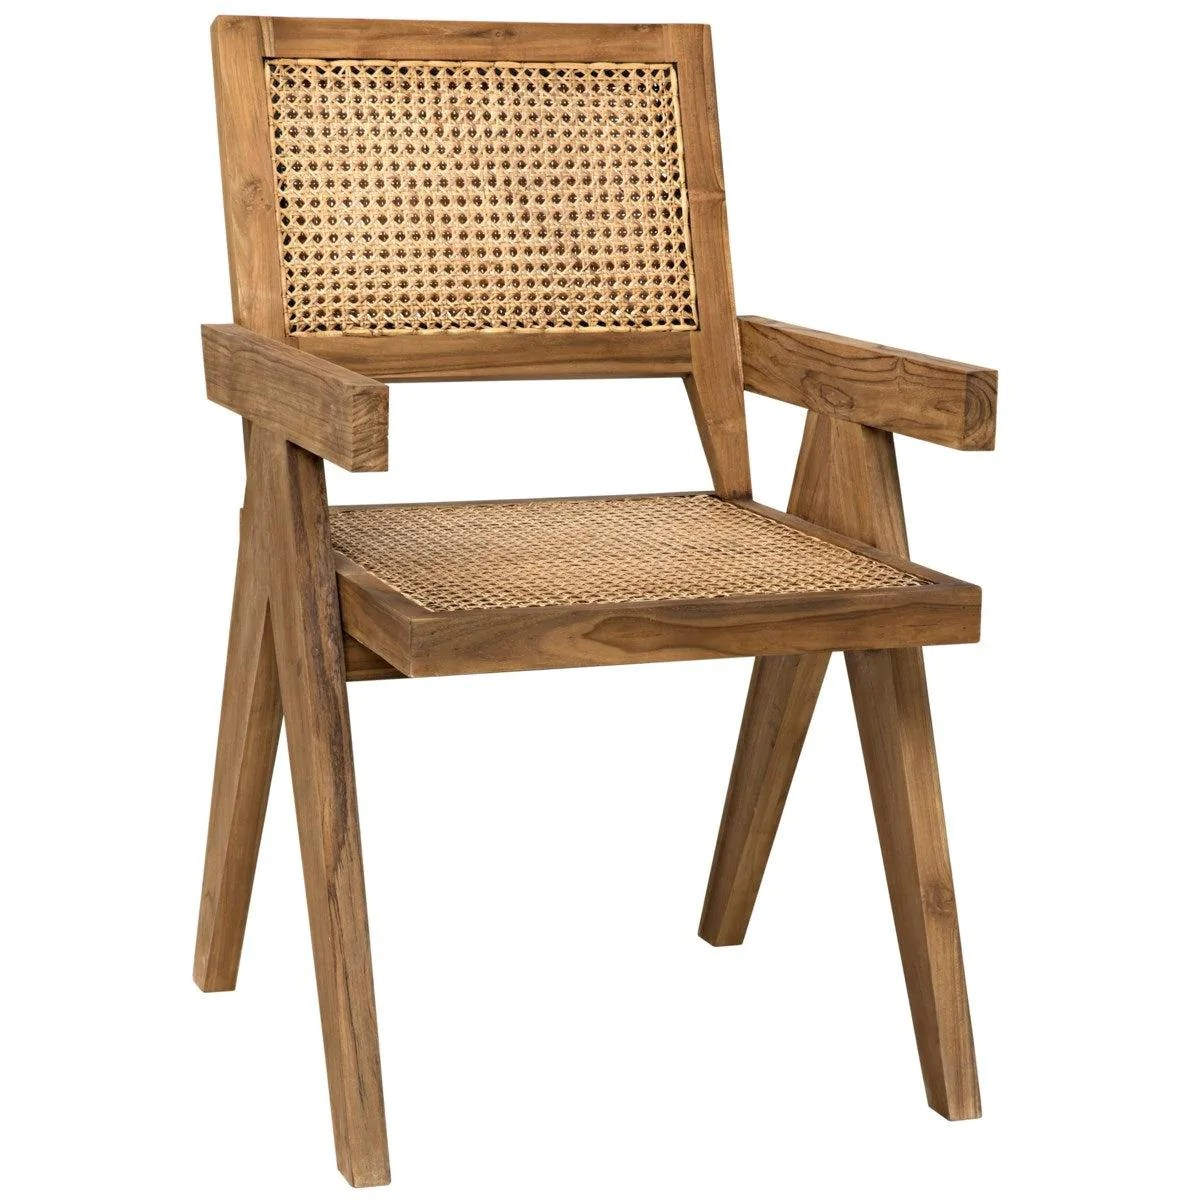 Noir Furniture Jude Chair Teak With Caning